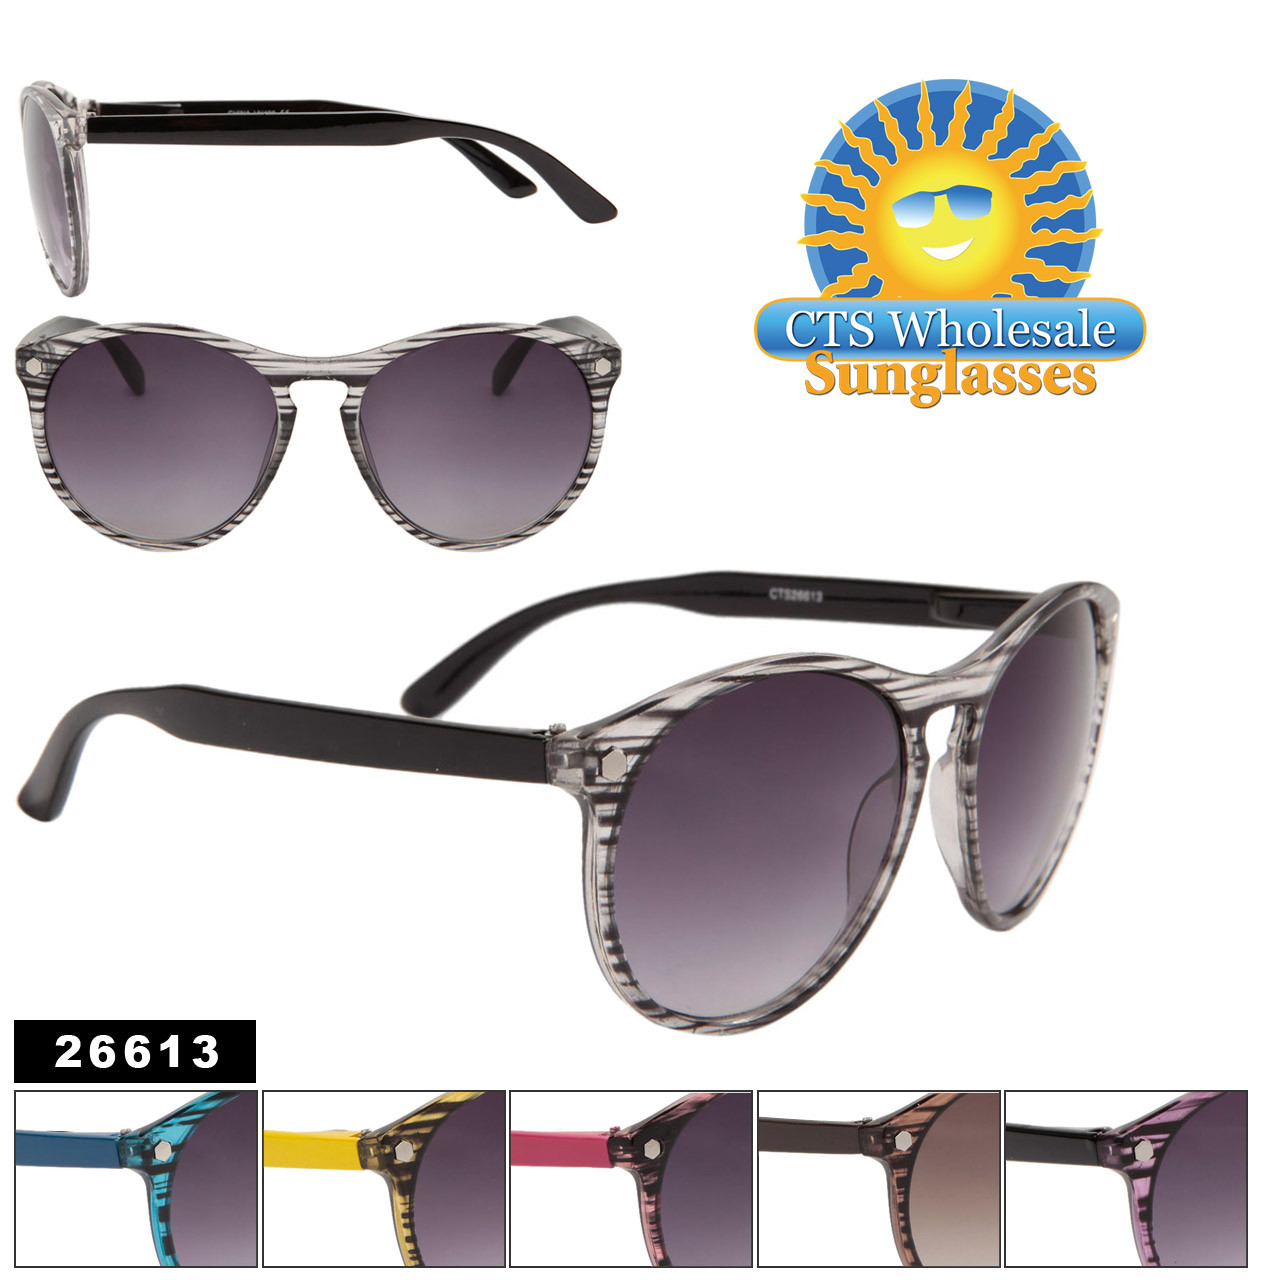 Big Frame Sunglasses in assorted colors item # 26613